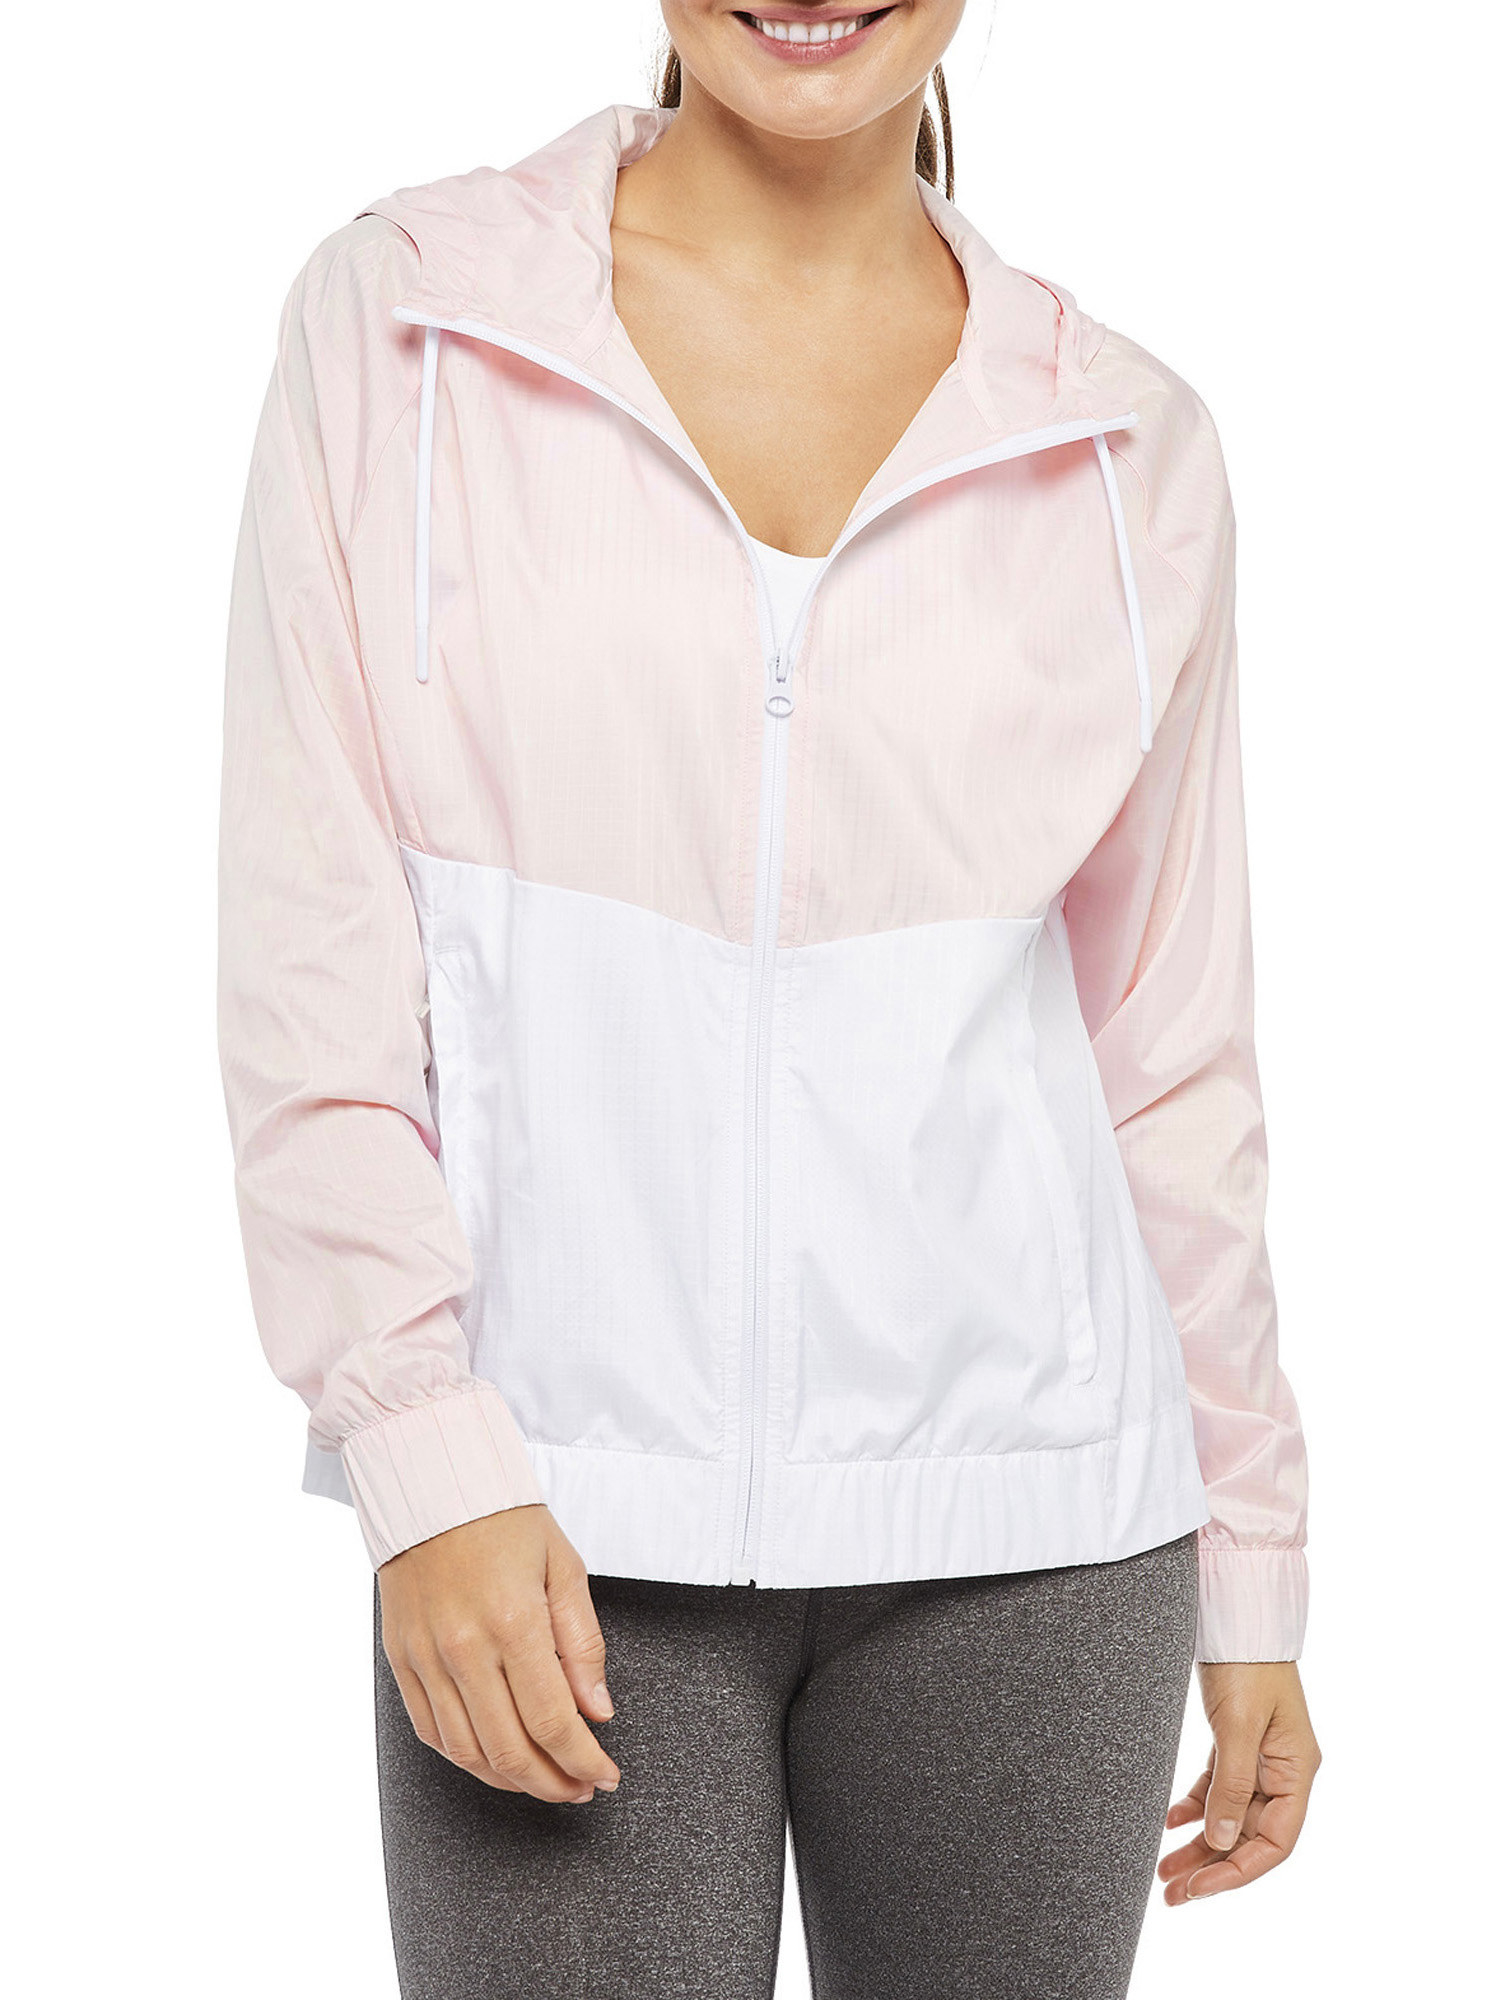 model wearing light pink and white zip-up hoodie